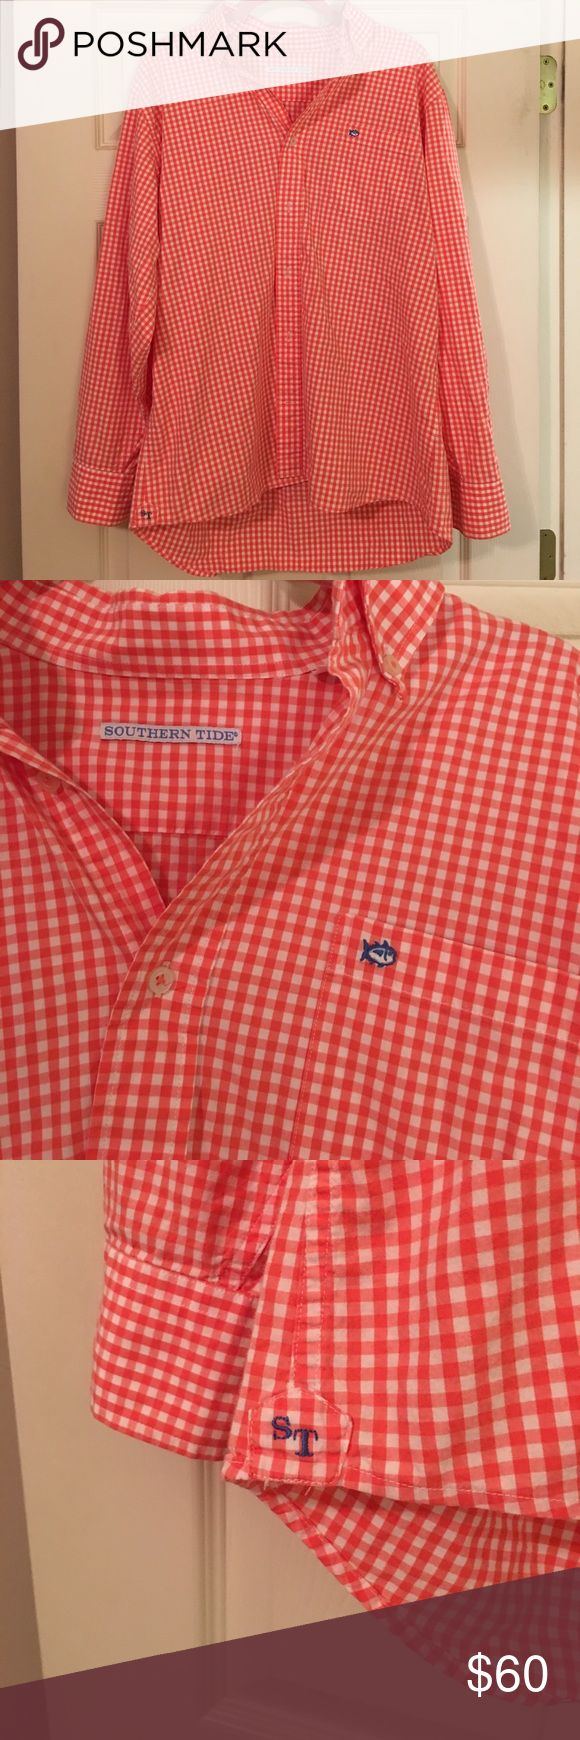 Men's Southern Tide Button Down Shirt Coral gingham Southern Tide men's shirt- size large Southern Tide Shirts Casual Button Down Shirts